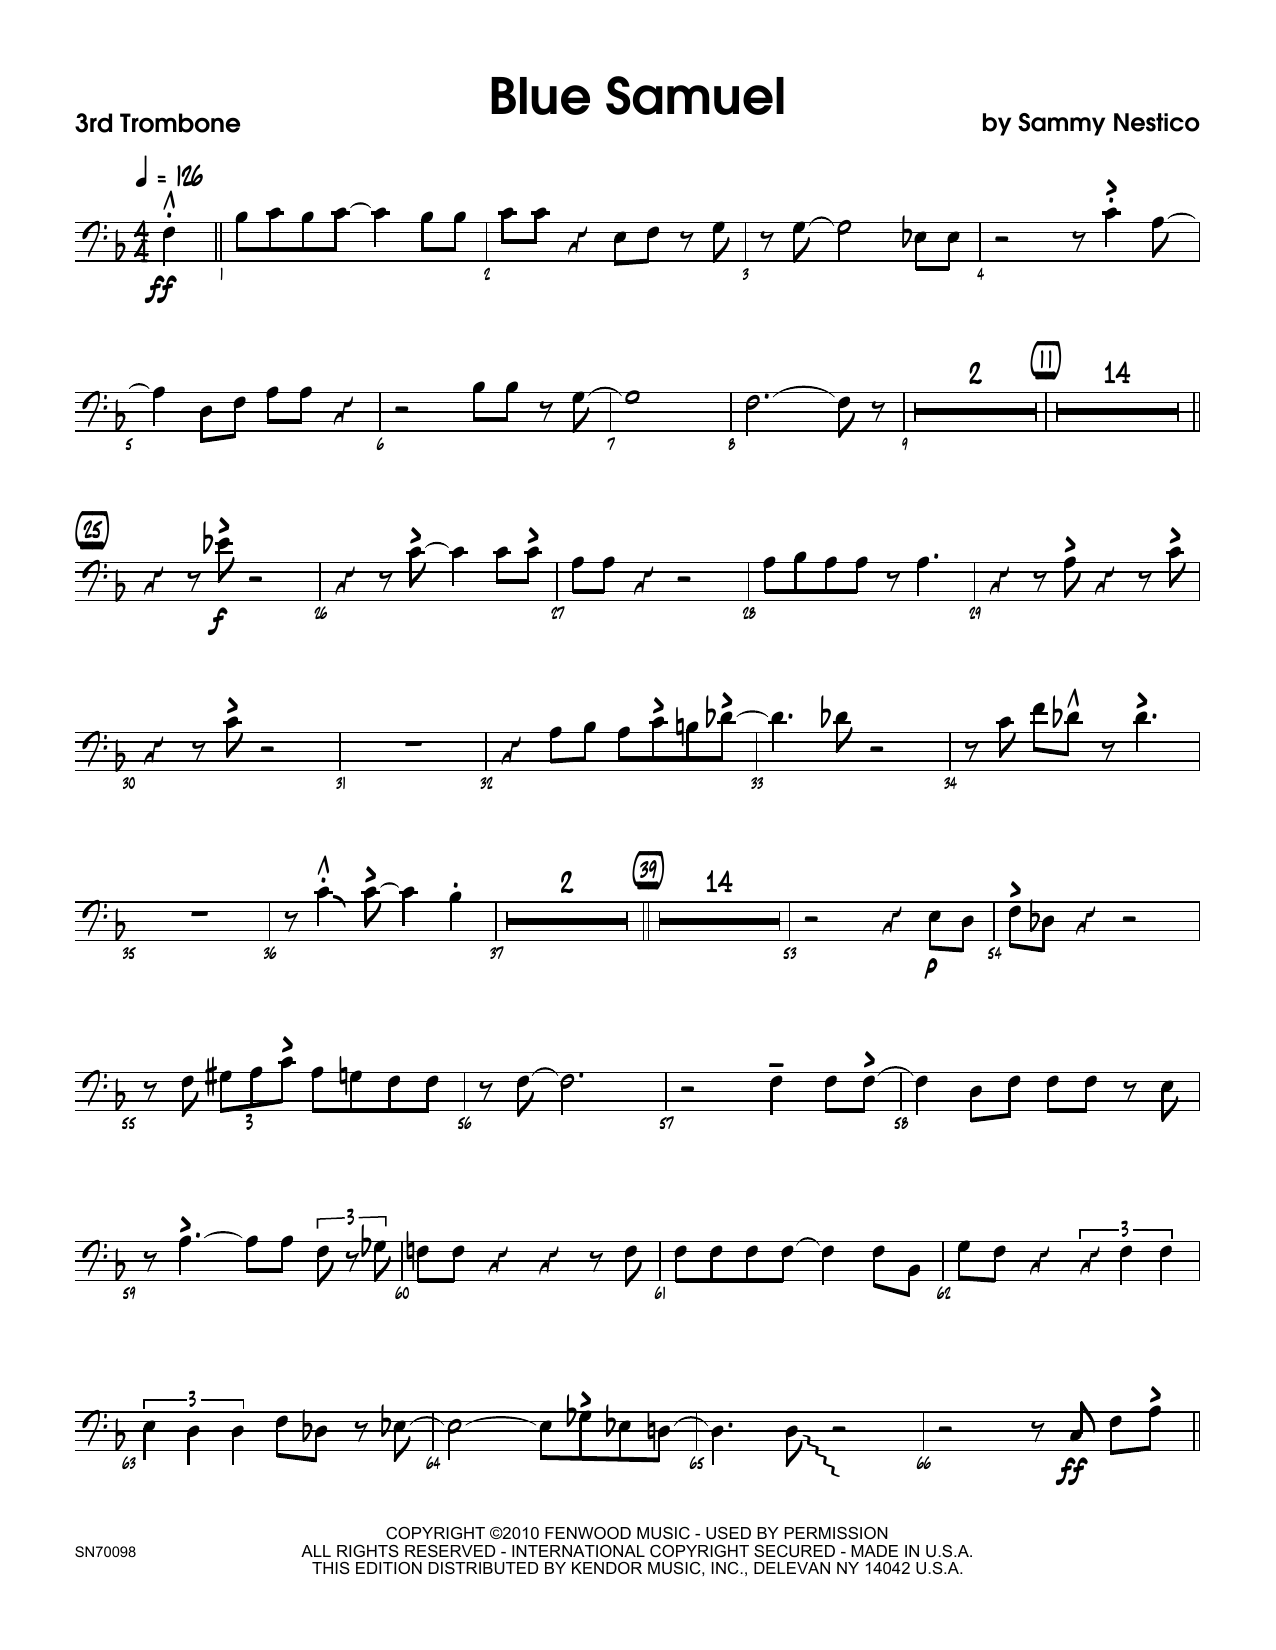 Blue Samuel - 3rd Trombone Sheet Music